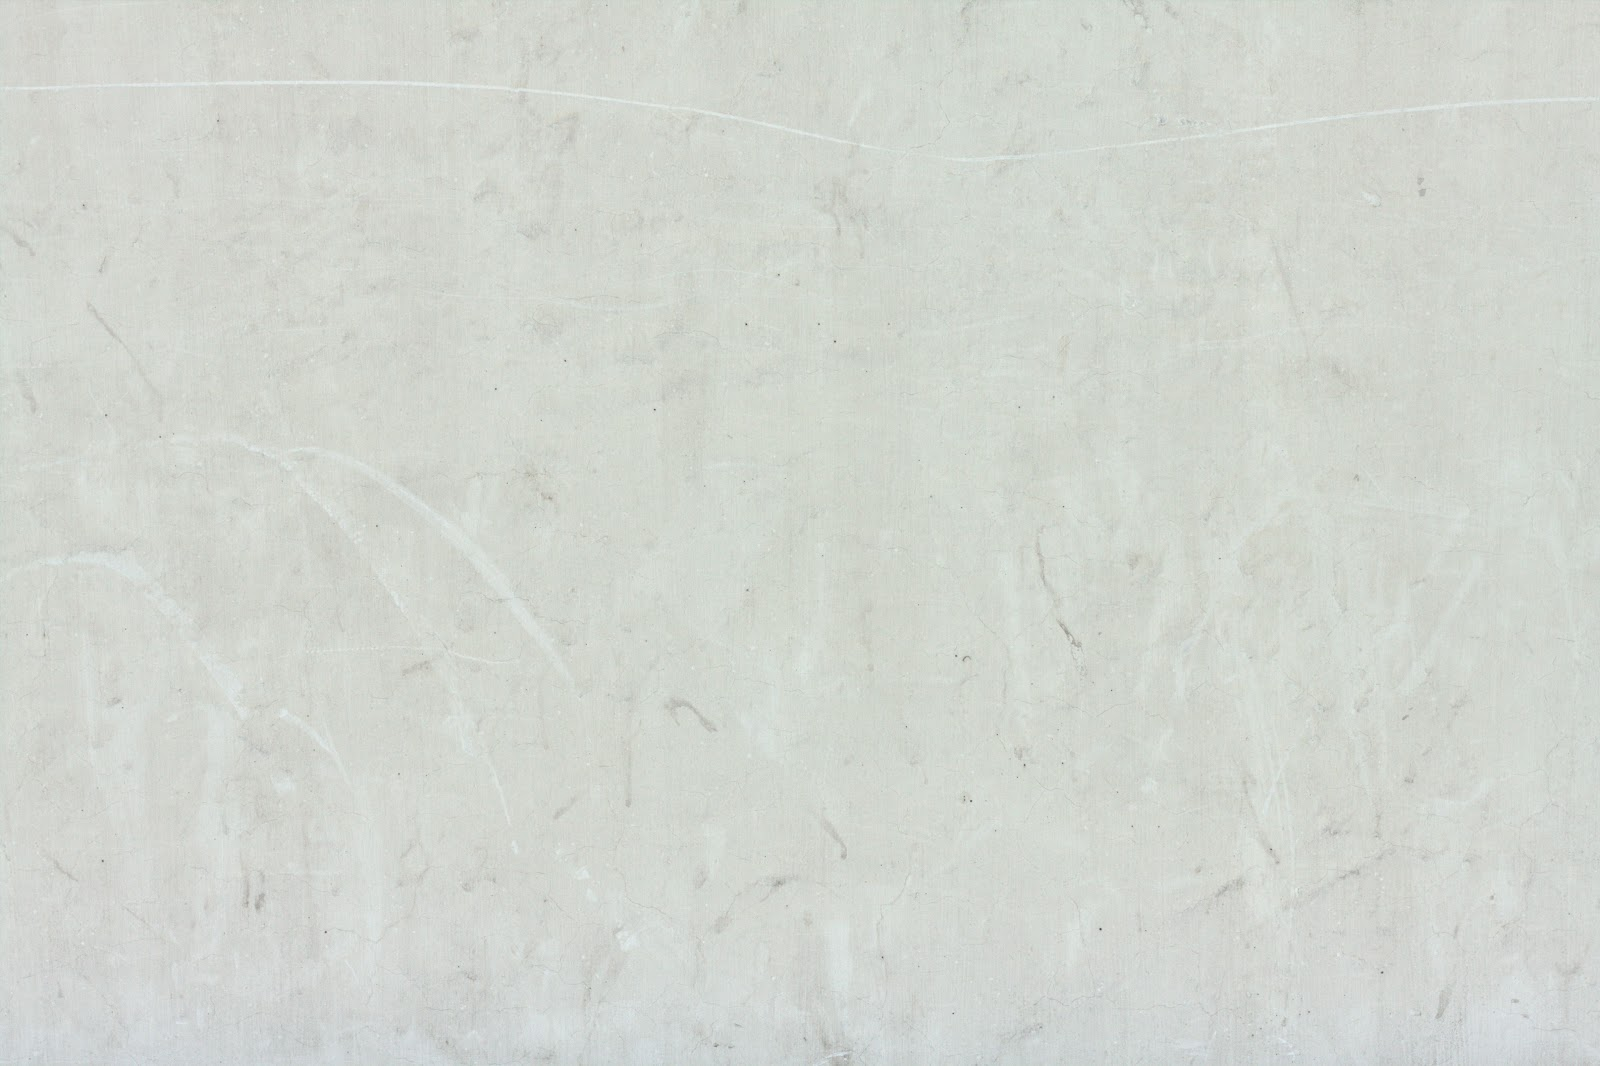 Concrete wall smooth white grunge texture 4770x3178